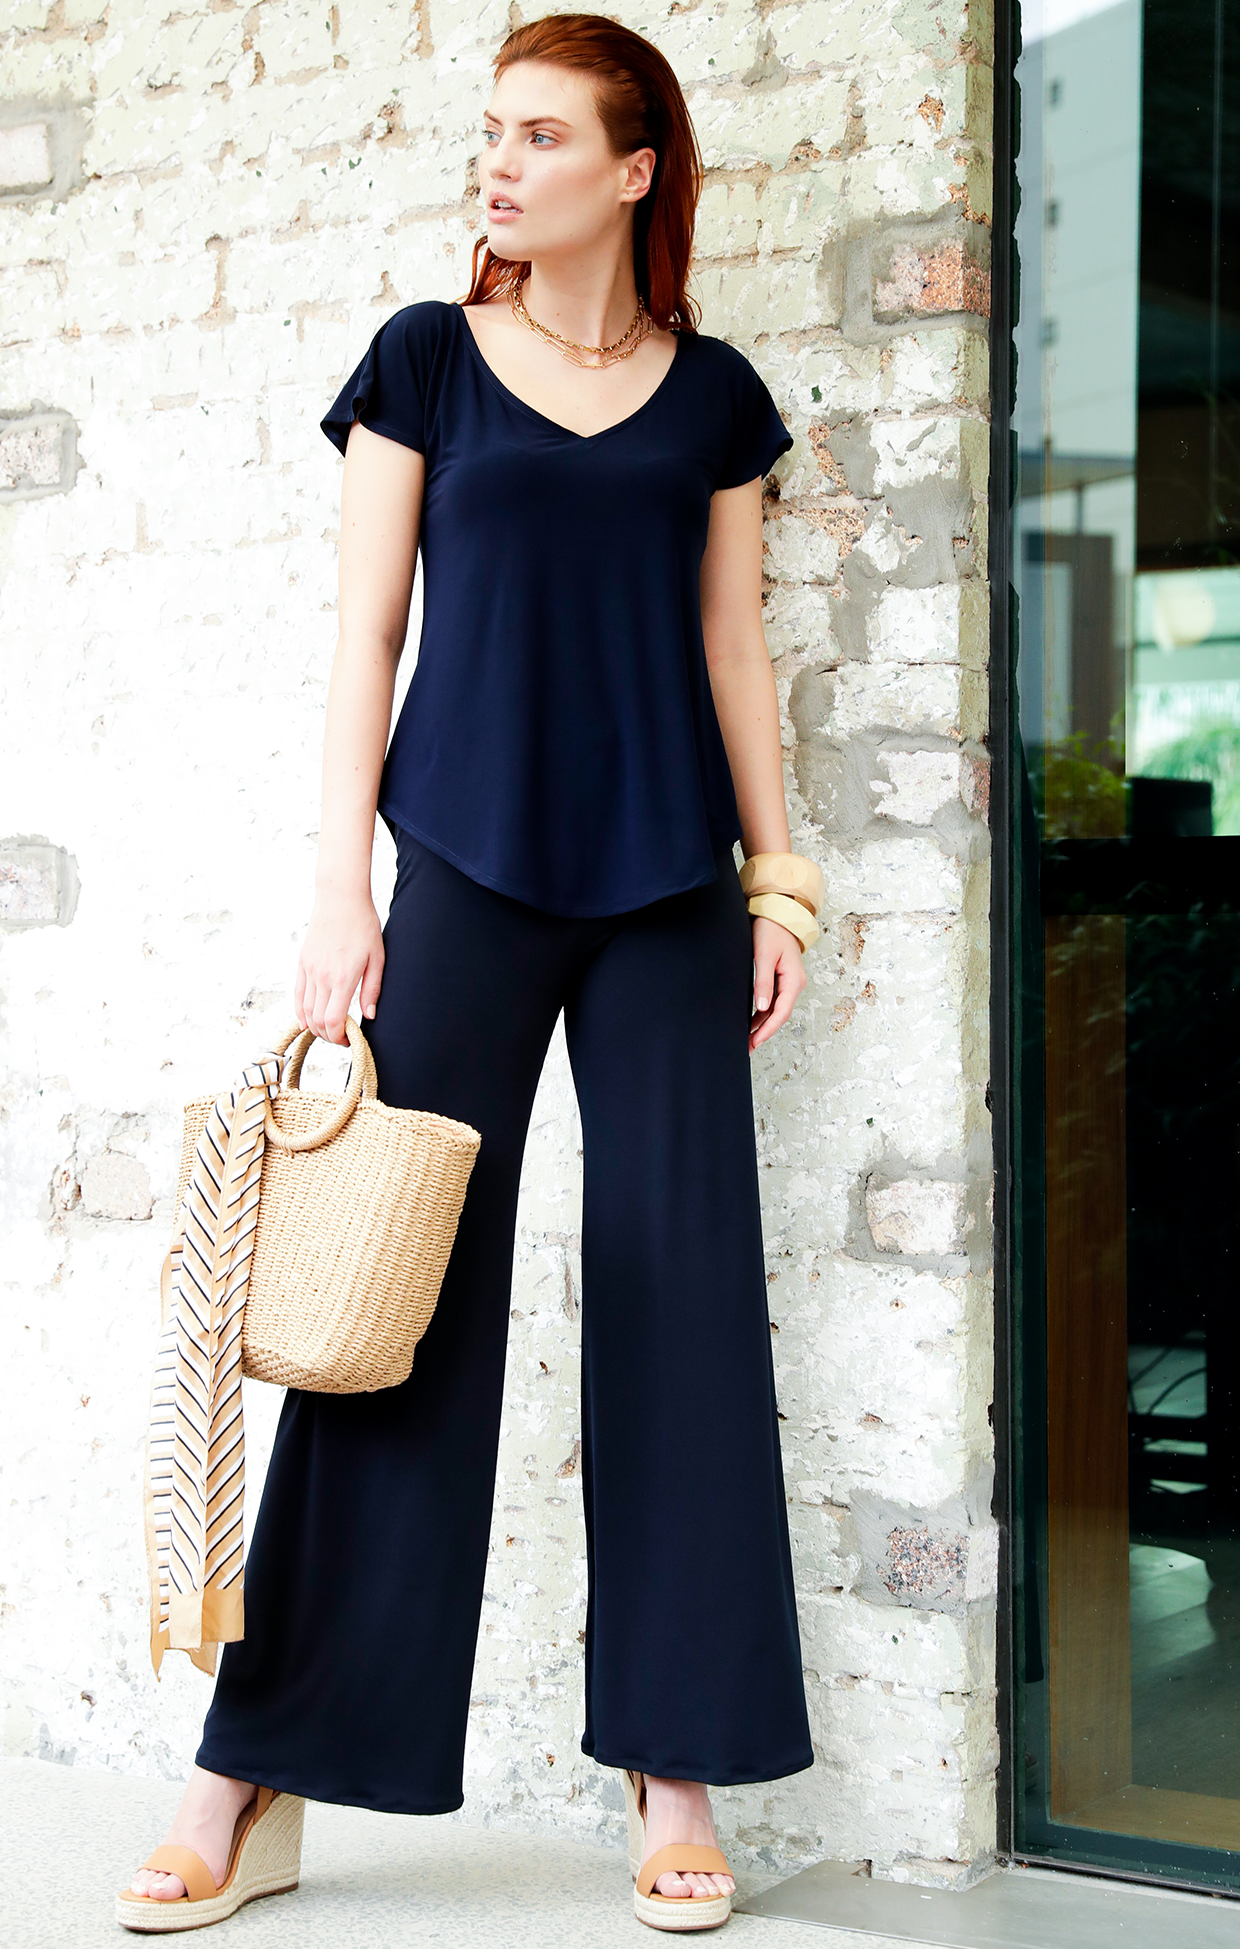 Analia Top (Navy) and Seamless Pants